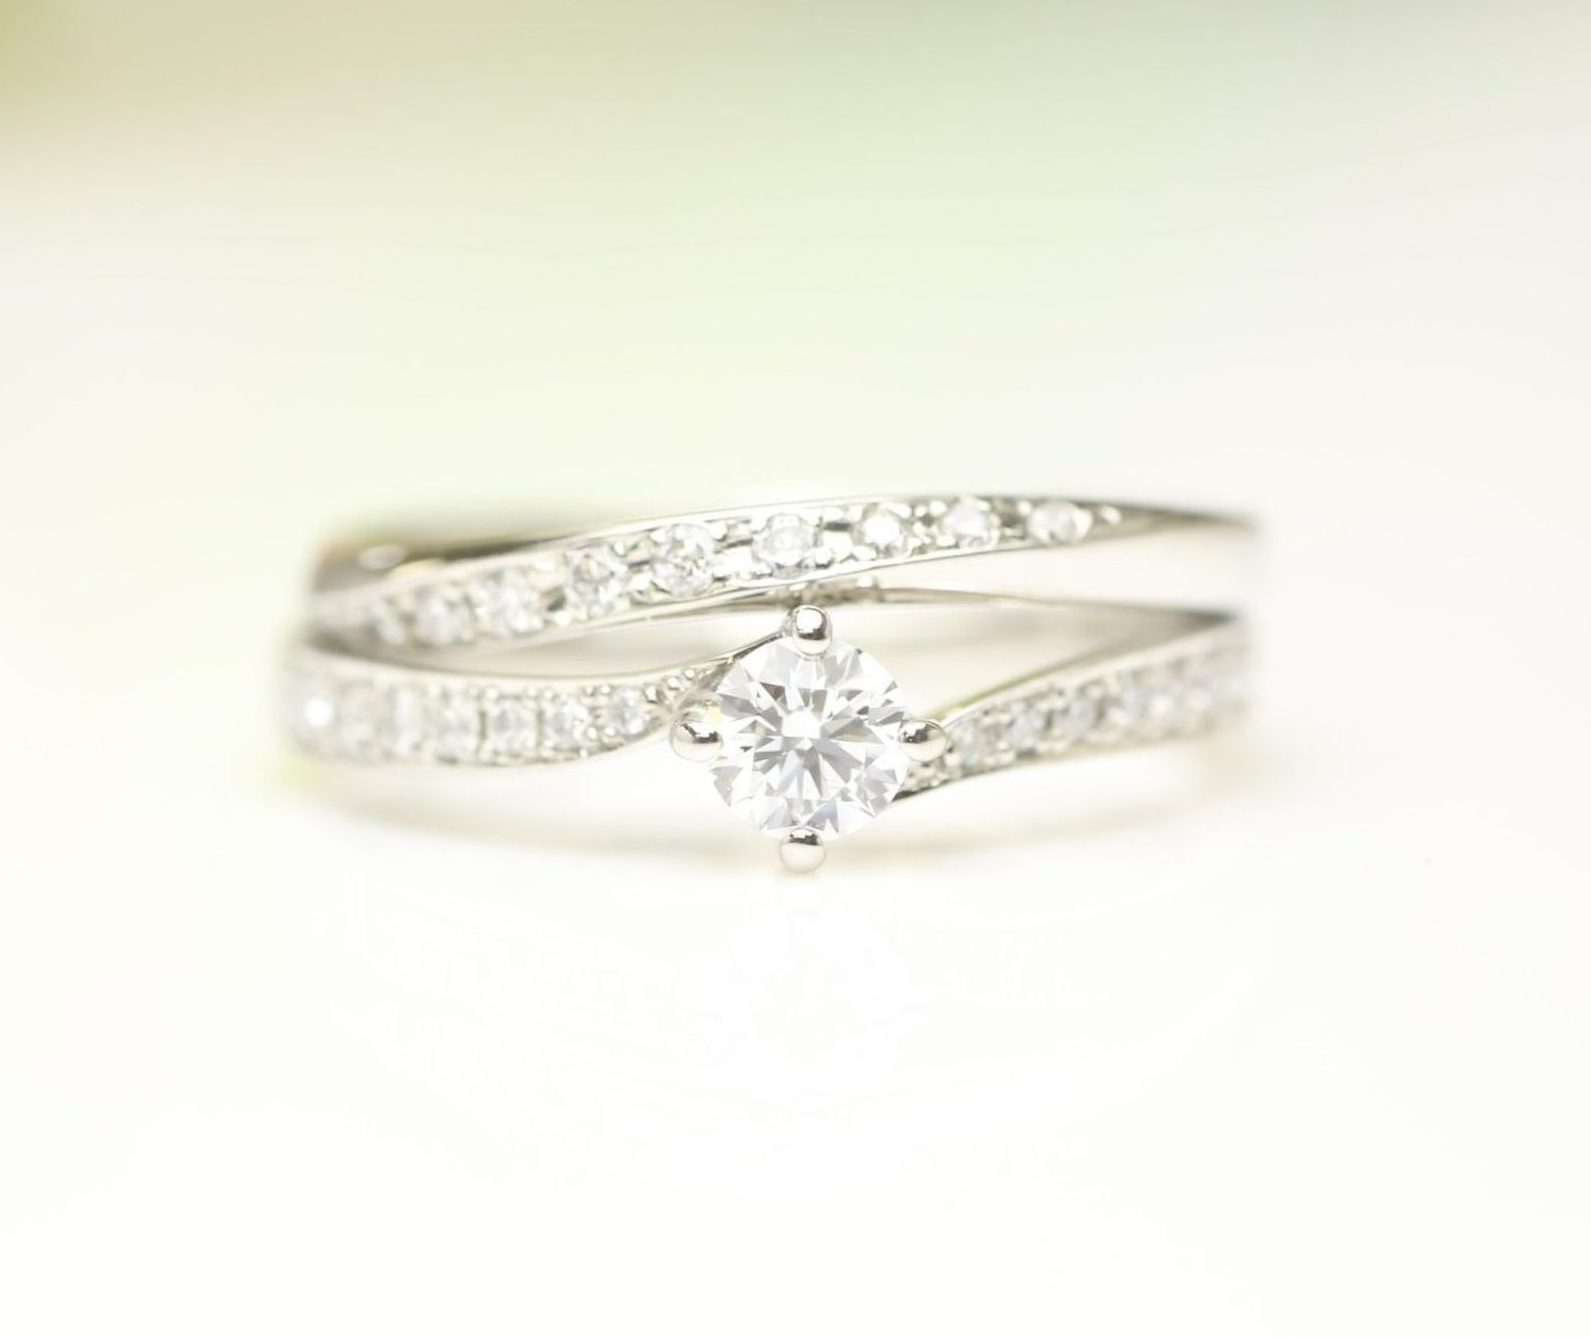 MARRIAGE RING & ENGAGEMENT RING1